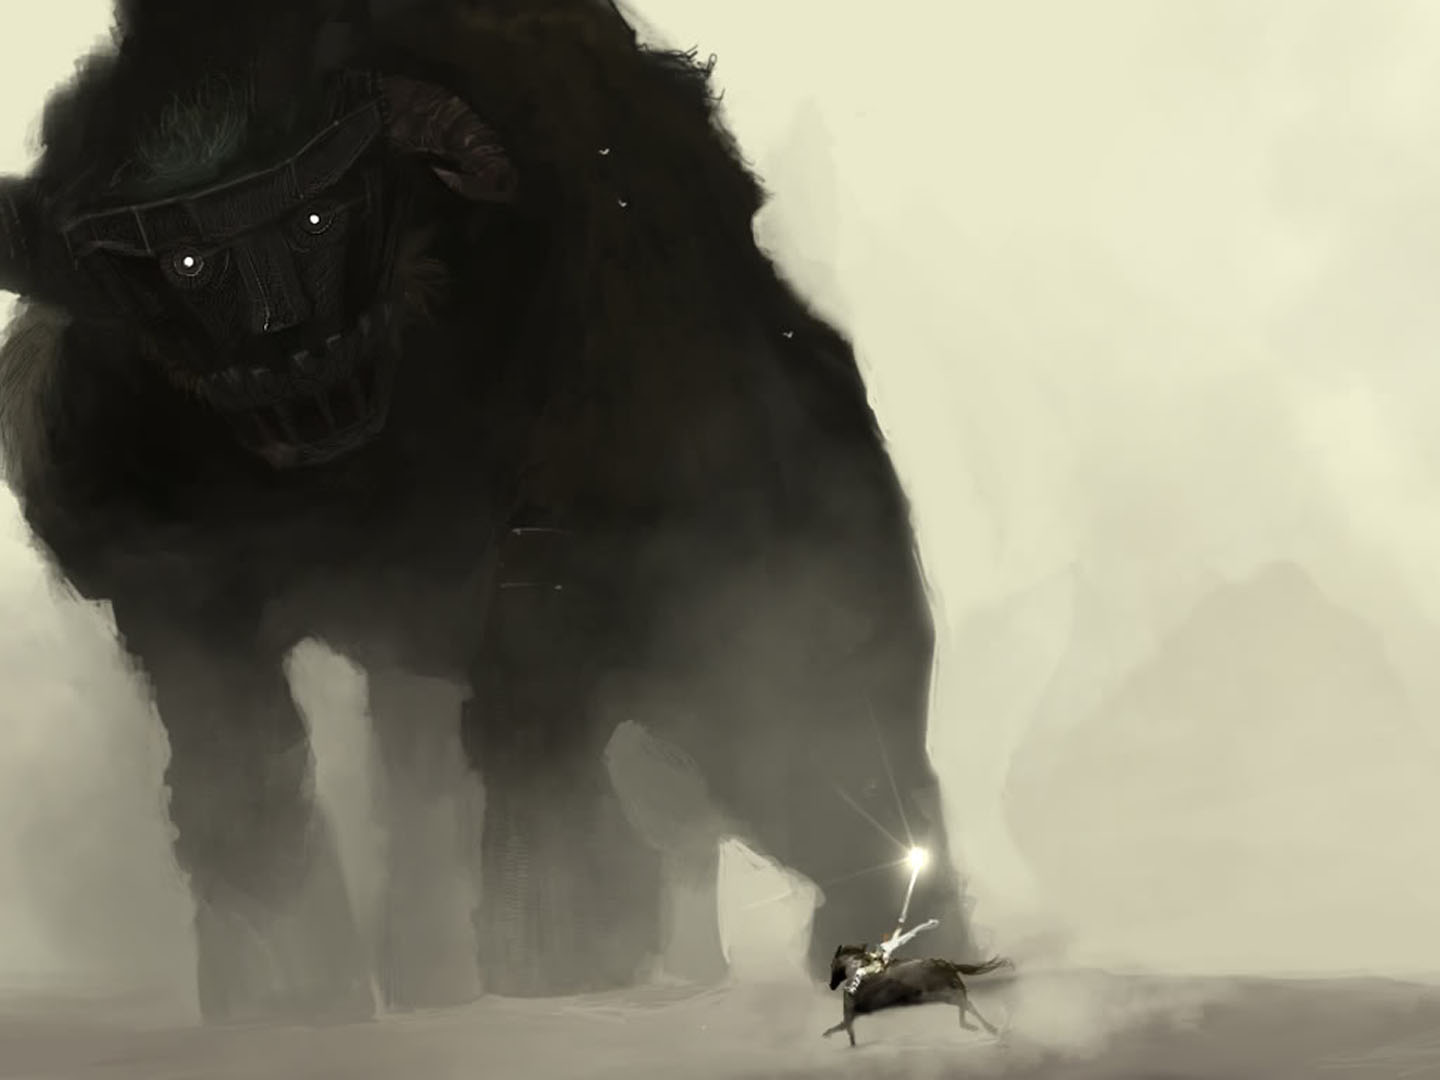 Enormous Colossus Walking In The Dust